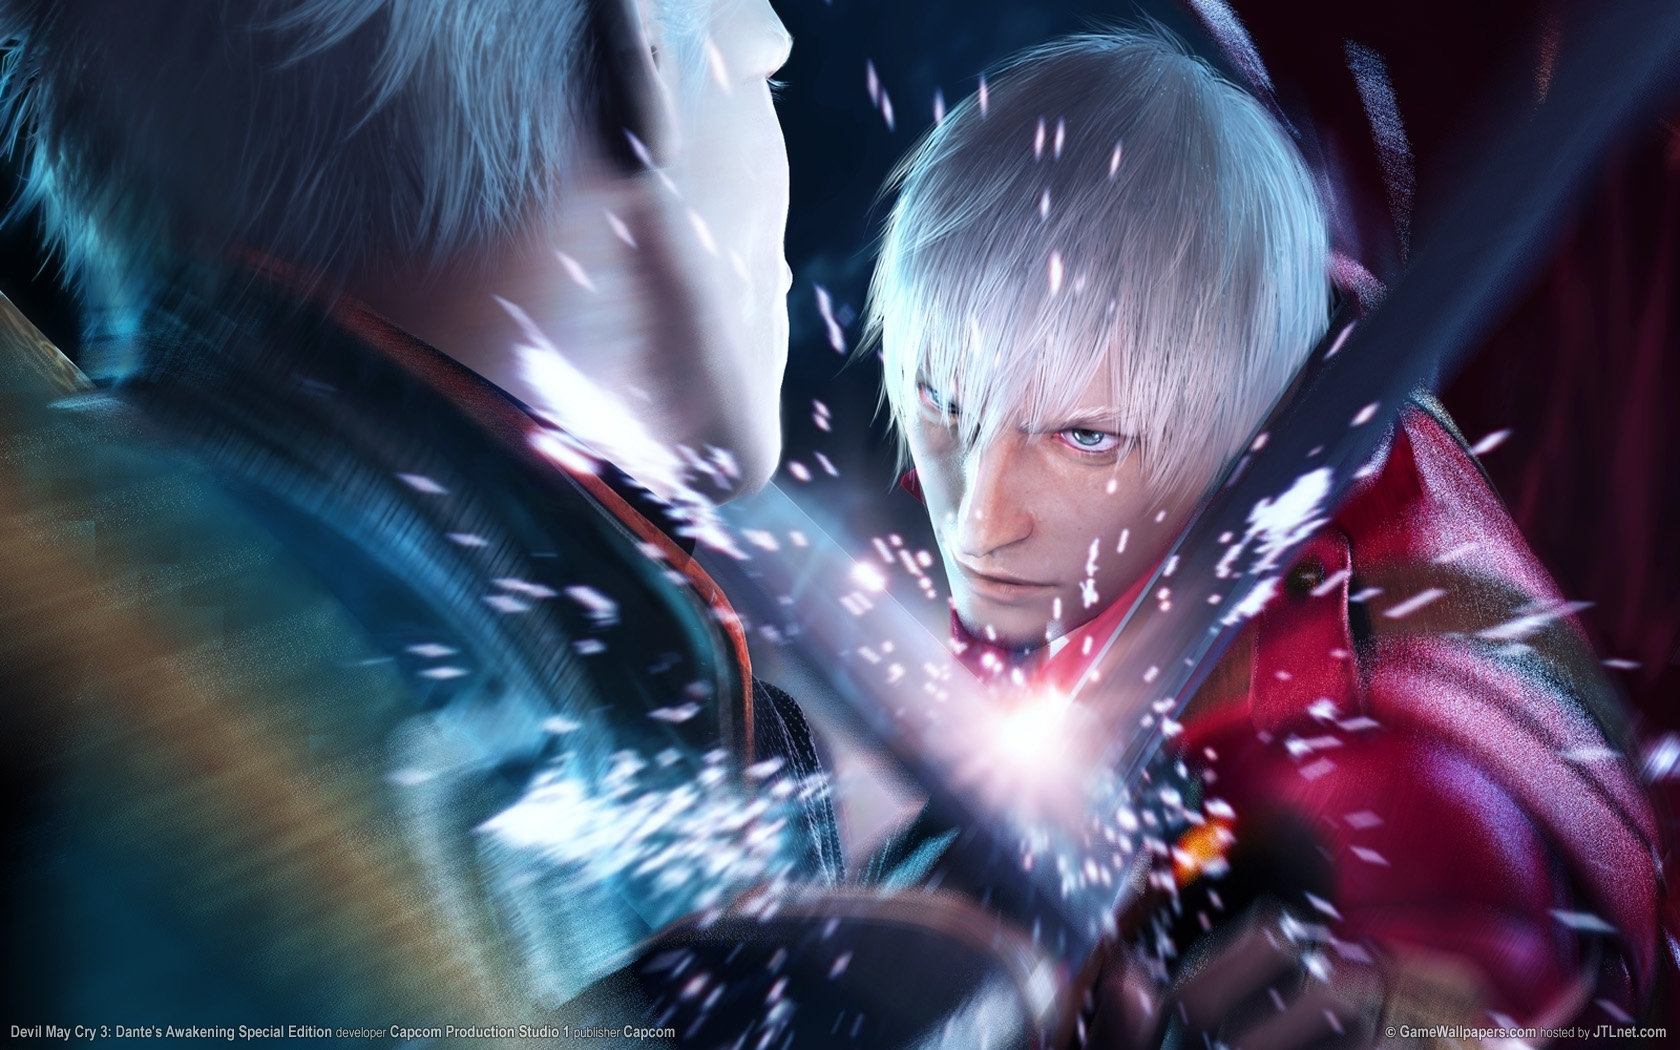 wallpaper devil may cry 3 dantes awakening special edition 01